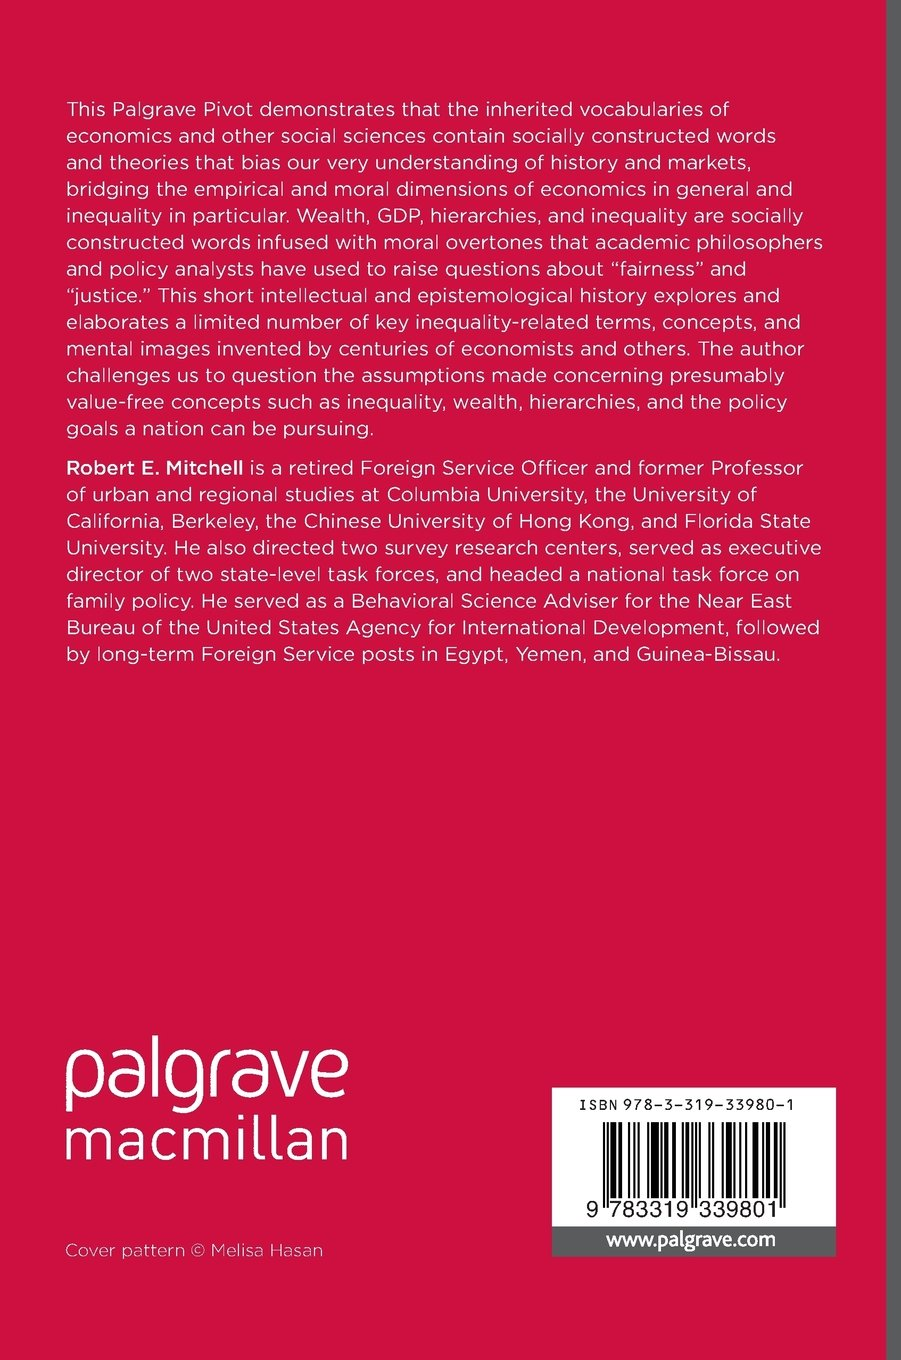 The Language of Economics: Socially Constructed Vocabularies and Assumptions by Palgrave Macmillan